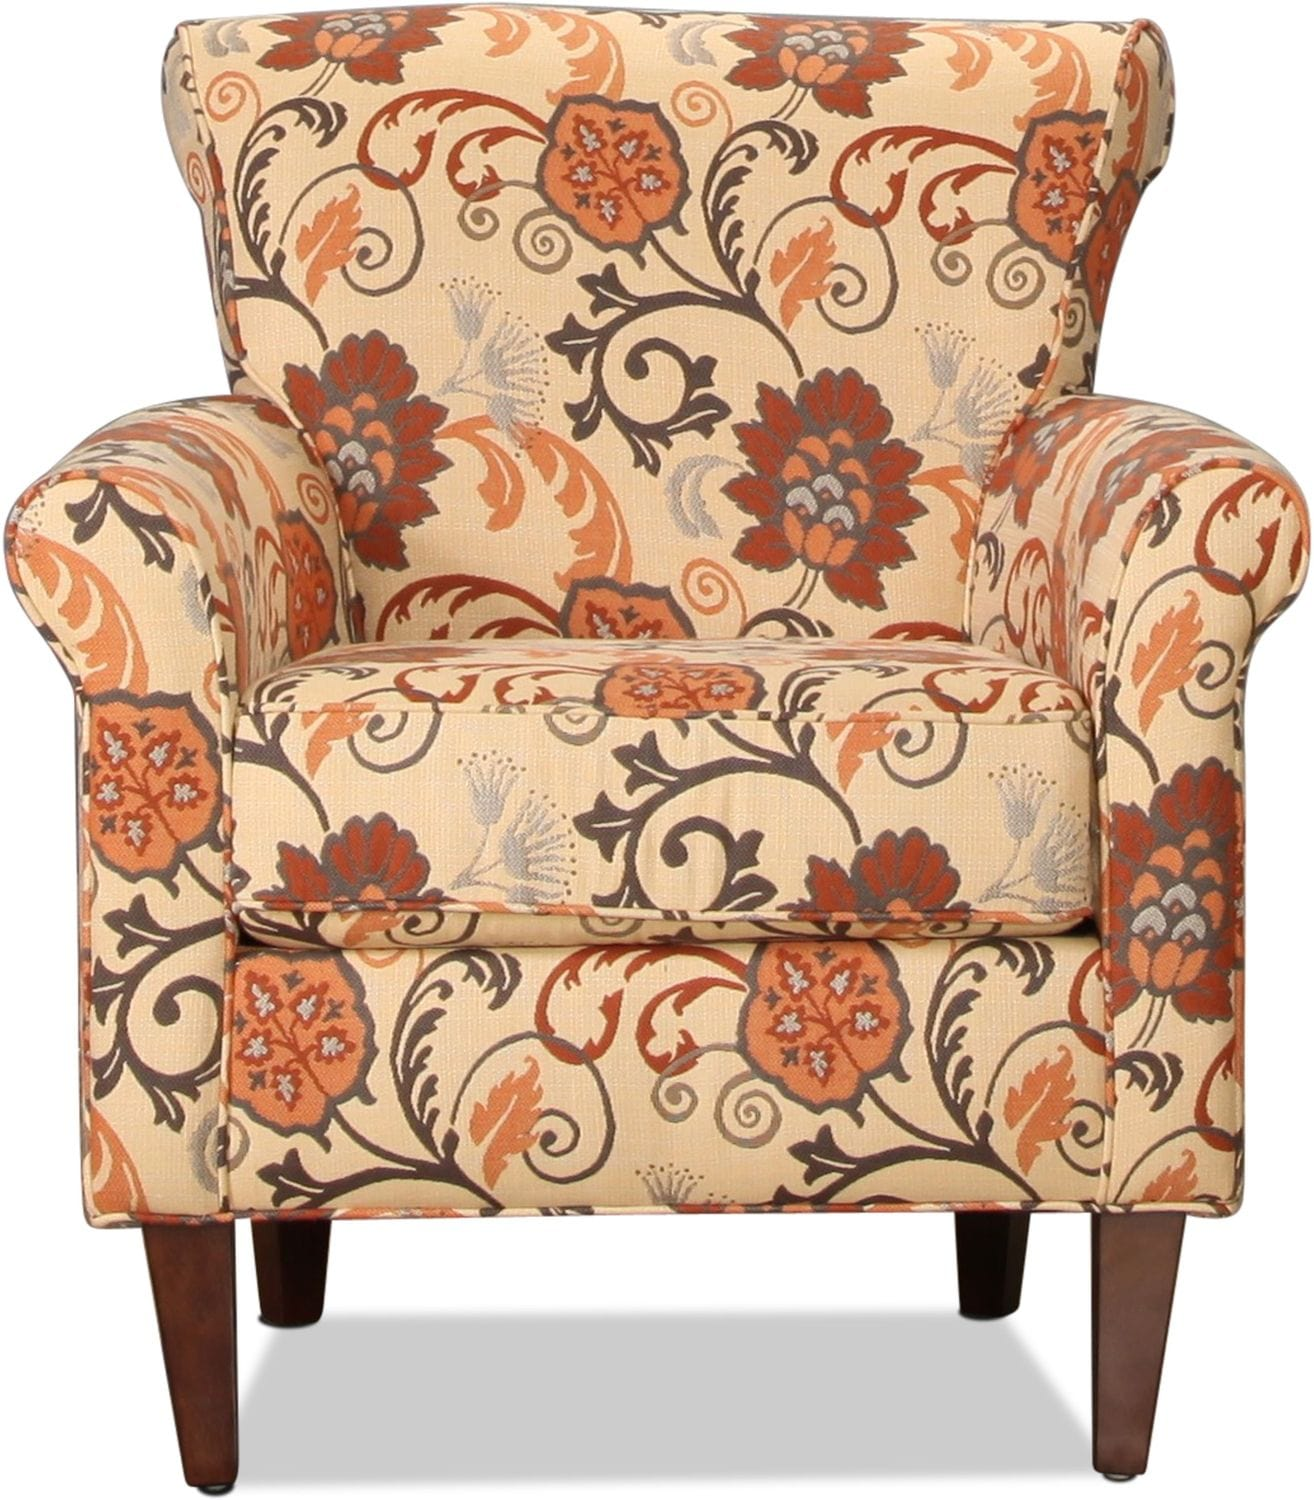 Living Room Furniture - Sunbrella Accent Chair - Floral